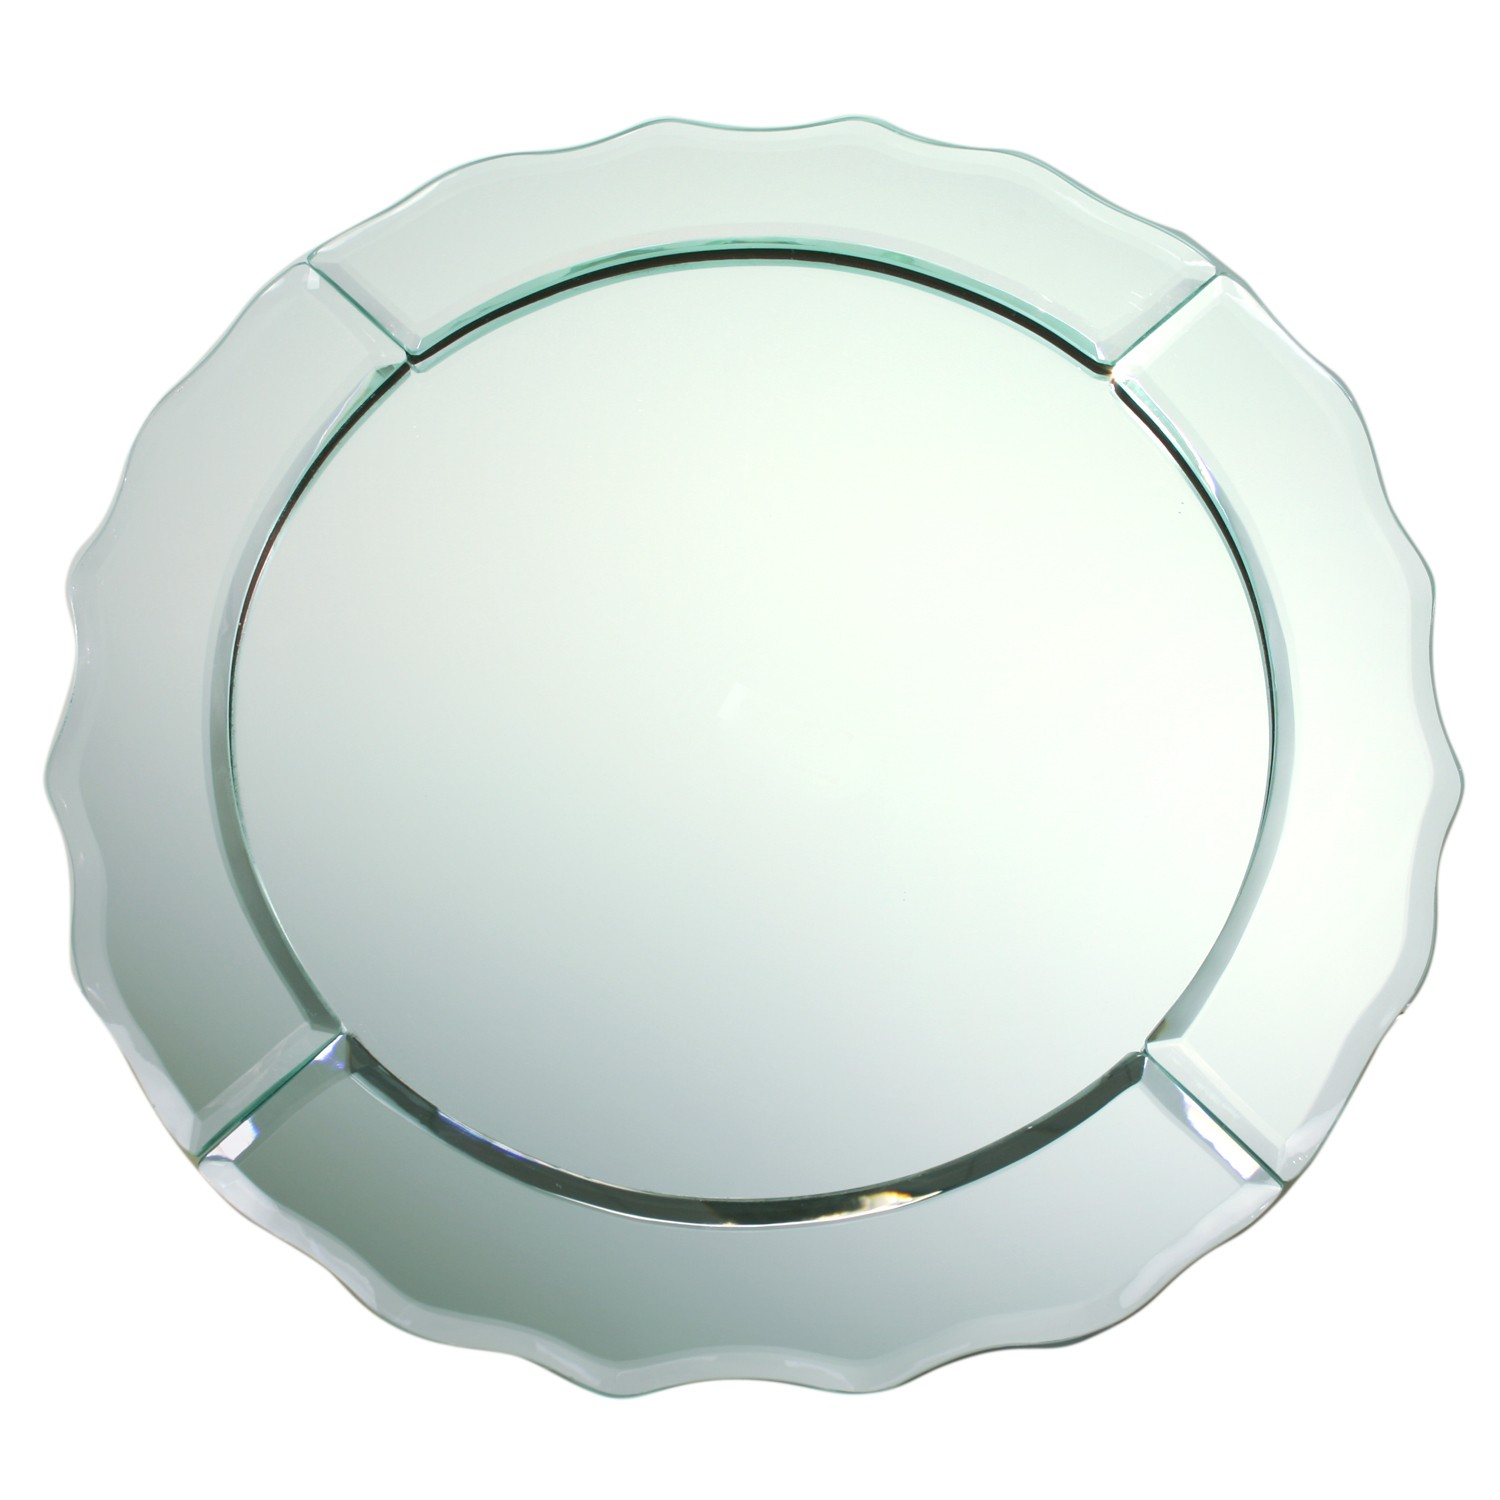 Chargeit! By Jay Scallop Edge Round Mirror Charger Plate